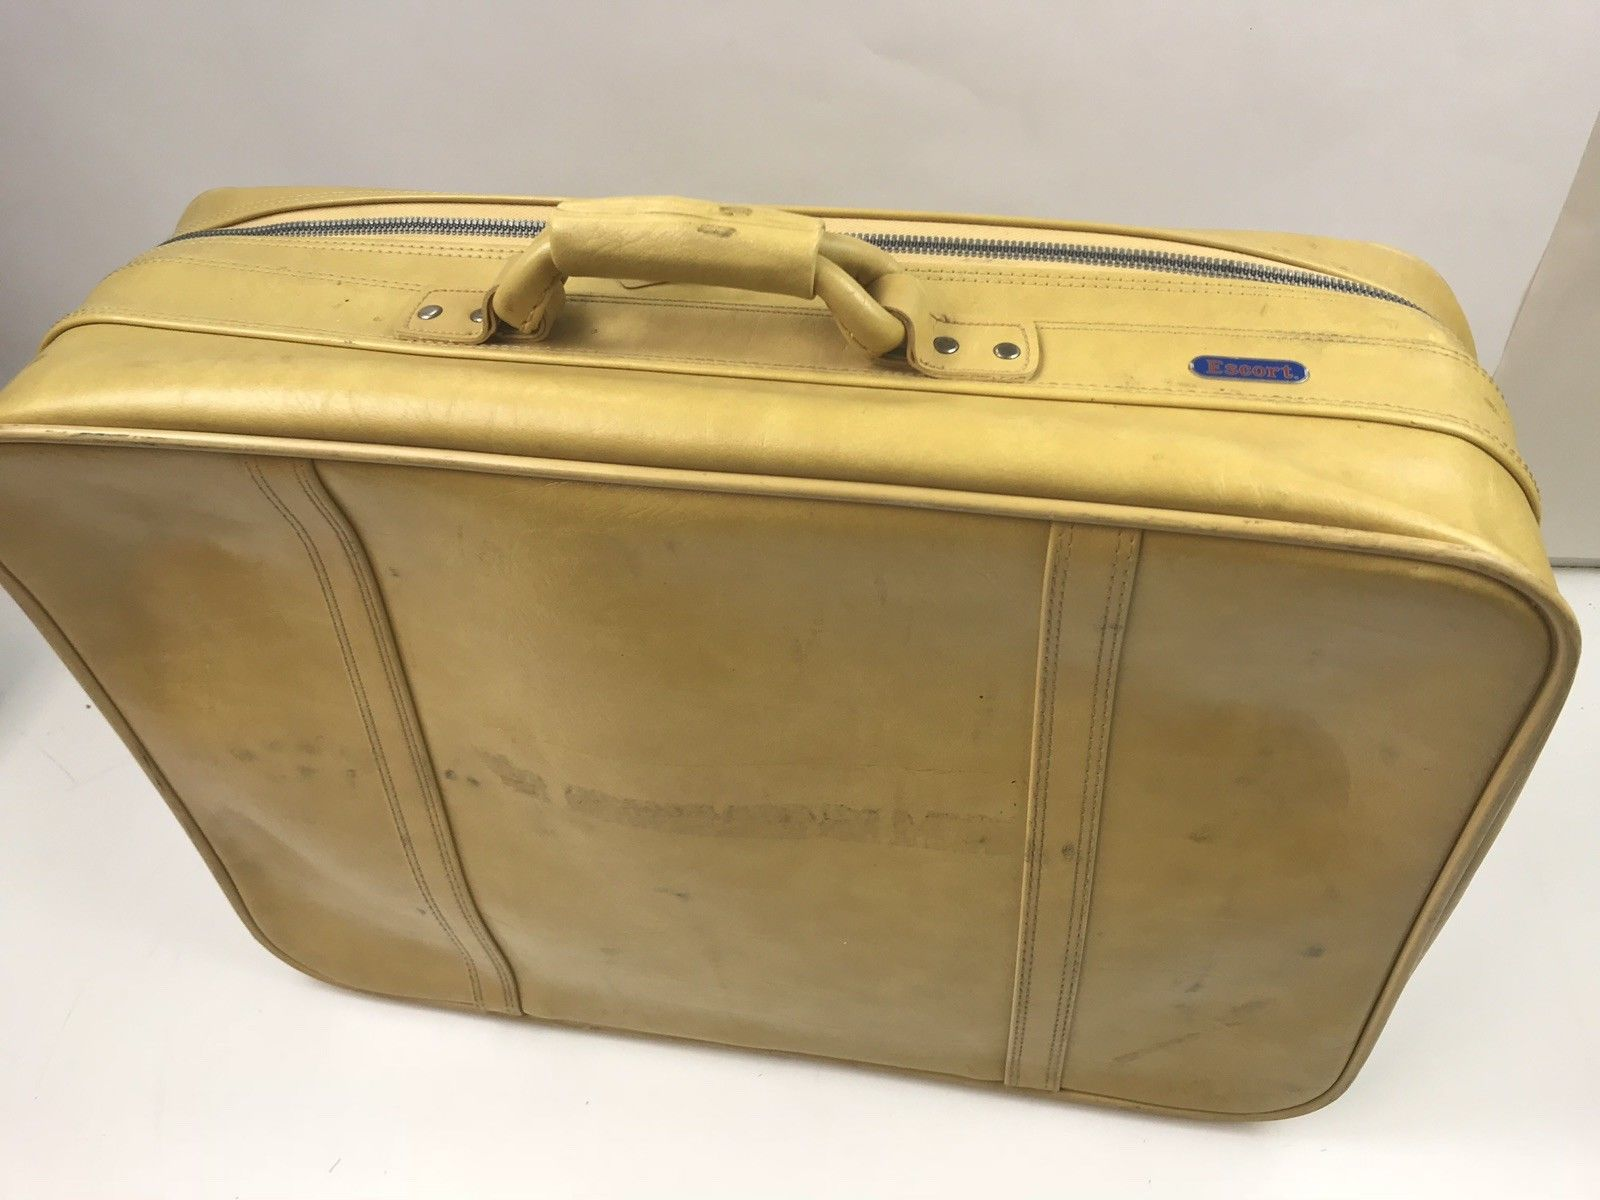 "Vintage Escort Suitcase Luggage Travel Carry On Bag Yellow Mustard 24"" x 17.5"""